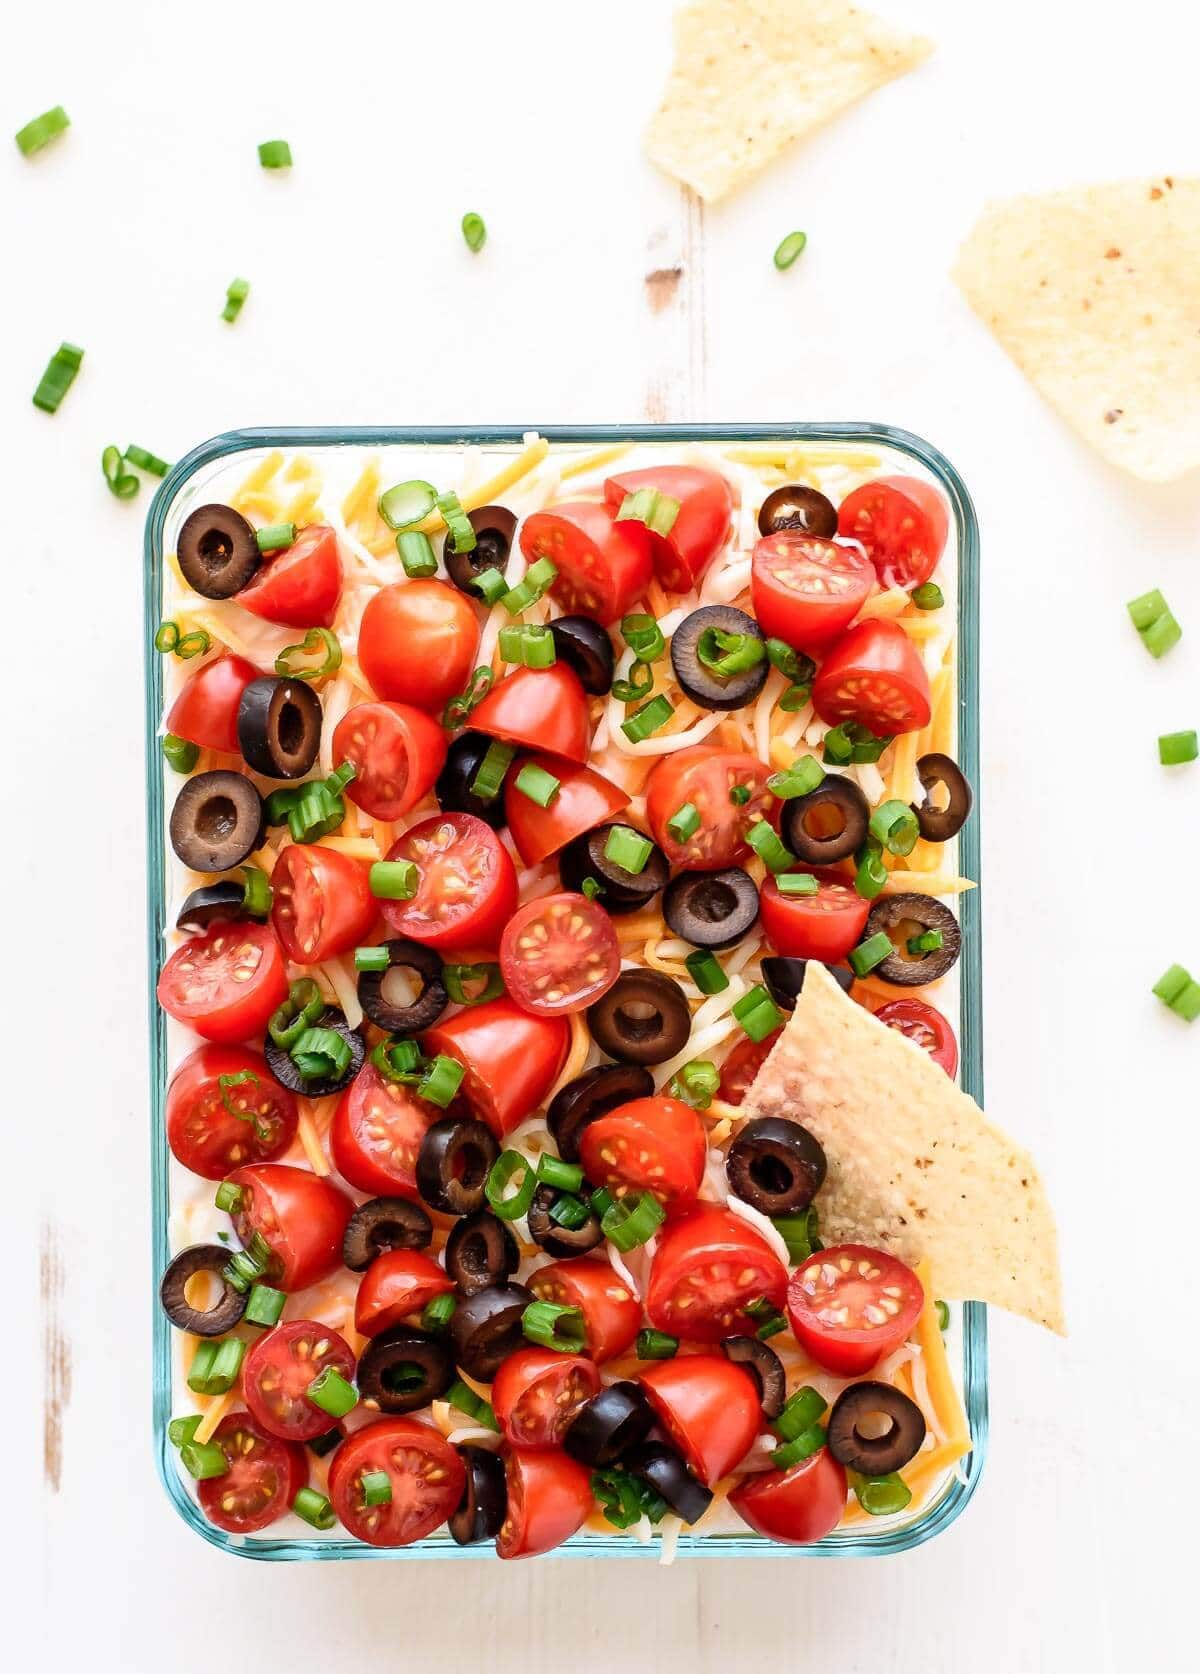 This 7 Layer Taco Dip recipe is made with fresh, simple ingredients and is a hit at any party!